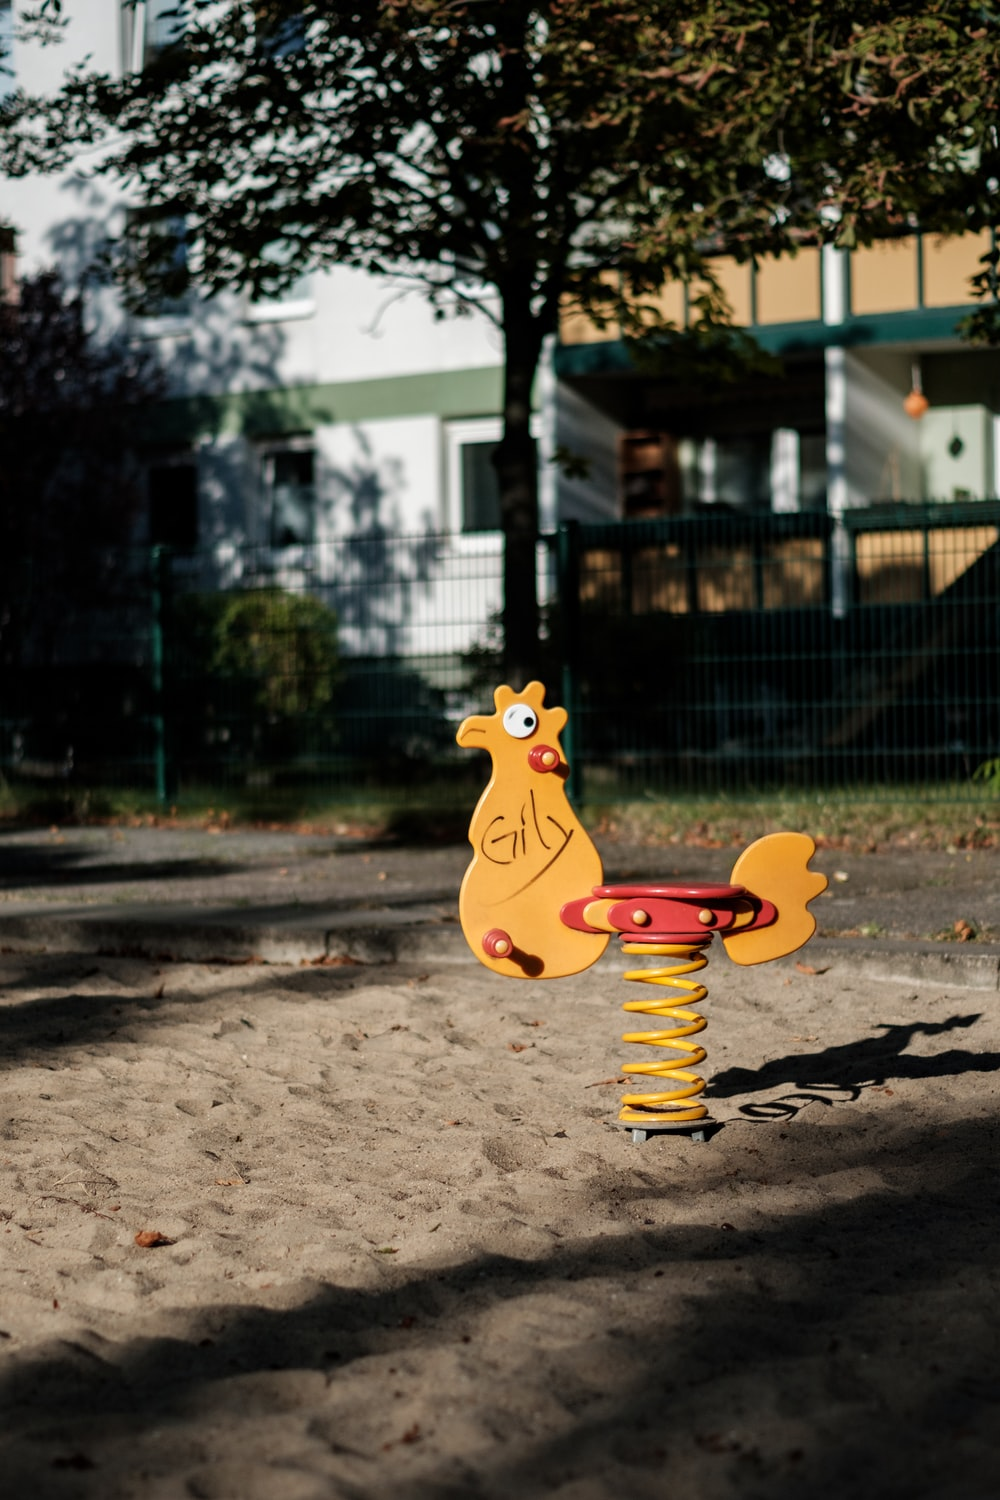 yellow and red metal chicken toy with coil spring